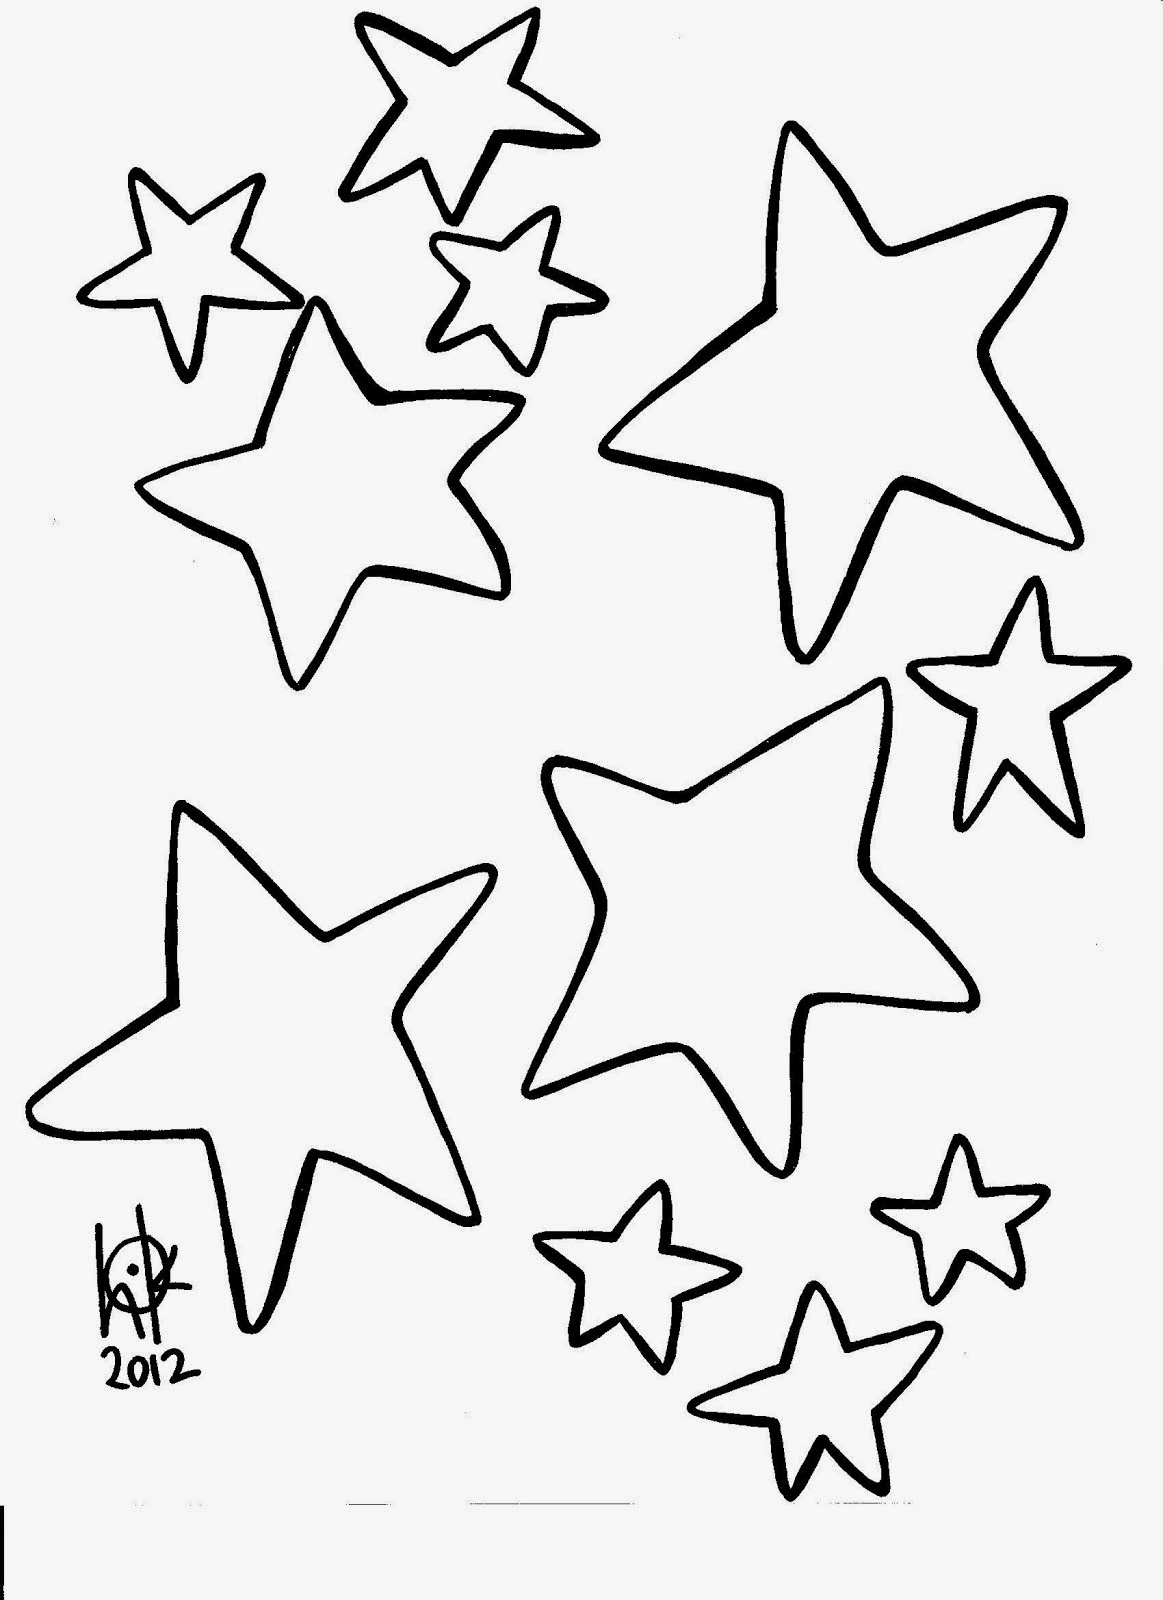 Star coloring pages star coloring pages 3 star coloring pages 4 star - Coloring Picture Of A Star Black And White Pictures To Color With Cartoon And Animal Coloring Pages